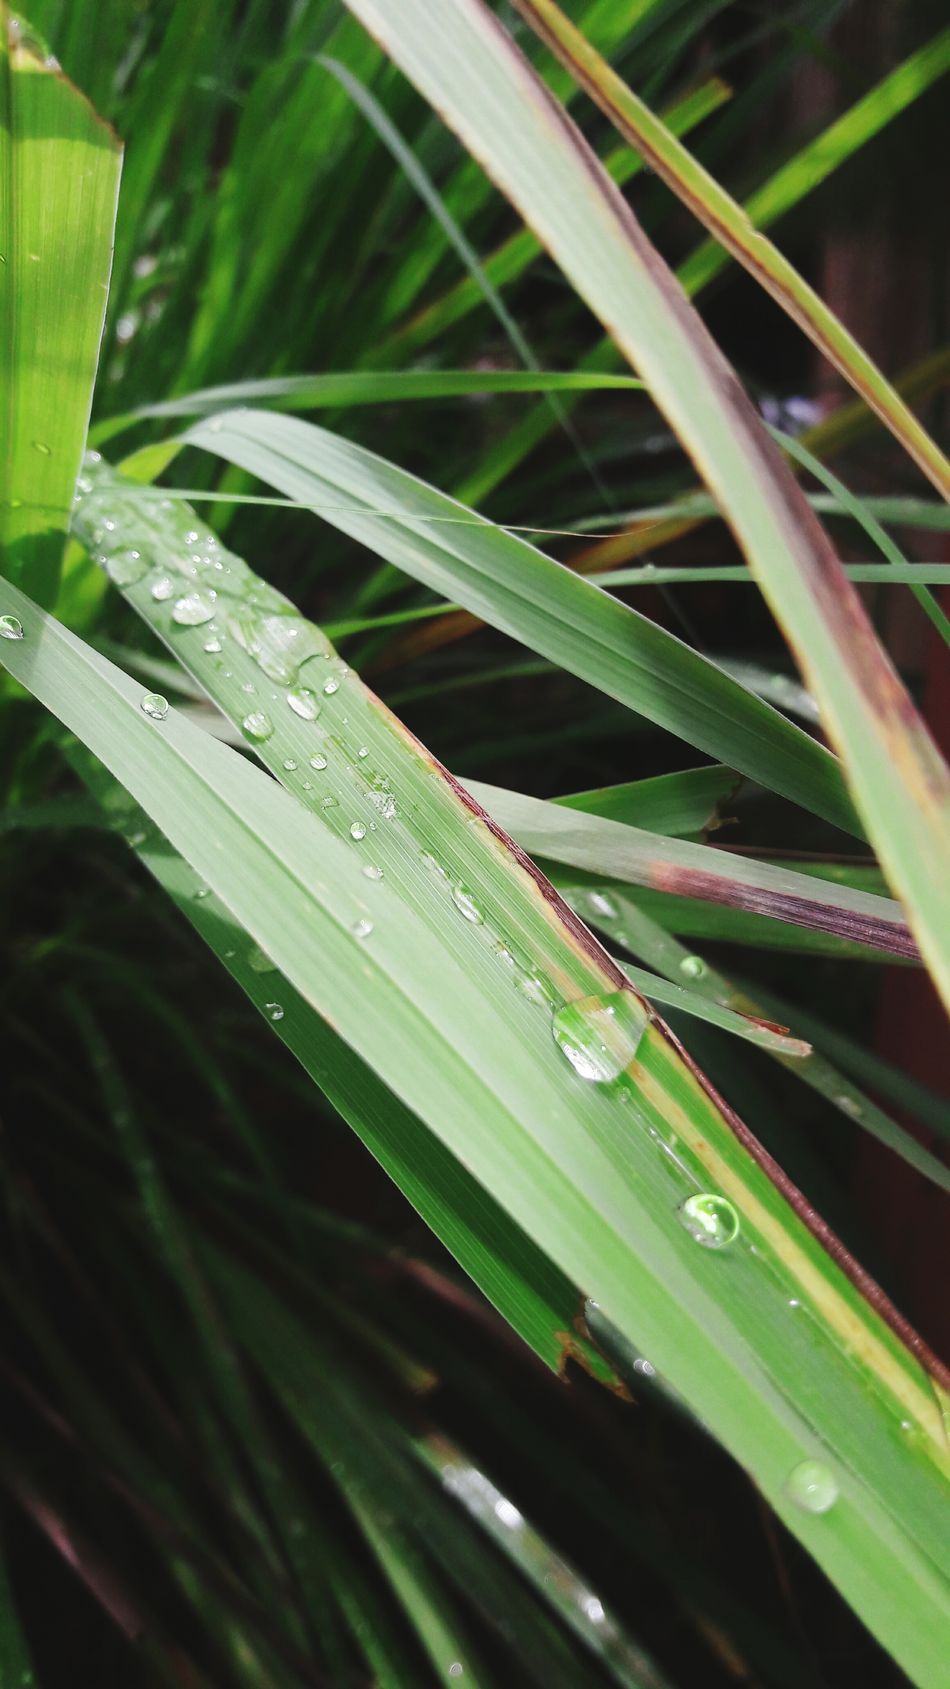 Purity. Drop Leaf Nature Wet Plant Close-up Growth Dew Rain Purity Freshness EyeEm Best Shots EyeEmNewHere Clean Water Rain Drops On Leaves